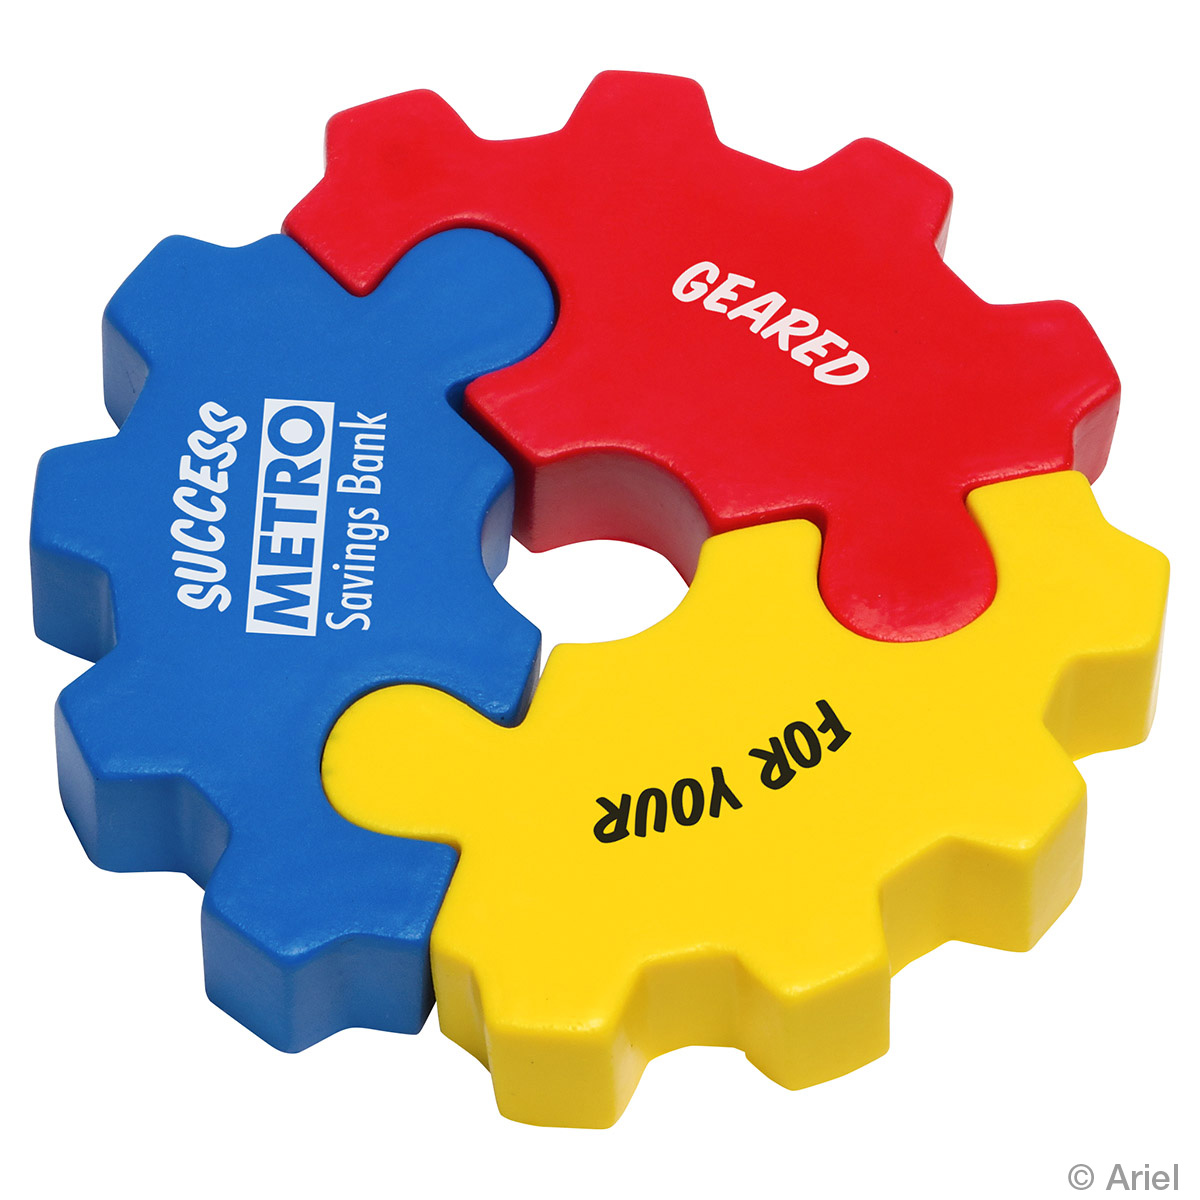 3 Piece Gear Puzzle Set Stress Reliever, LGS-GP16, 1 Colour Imprint